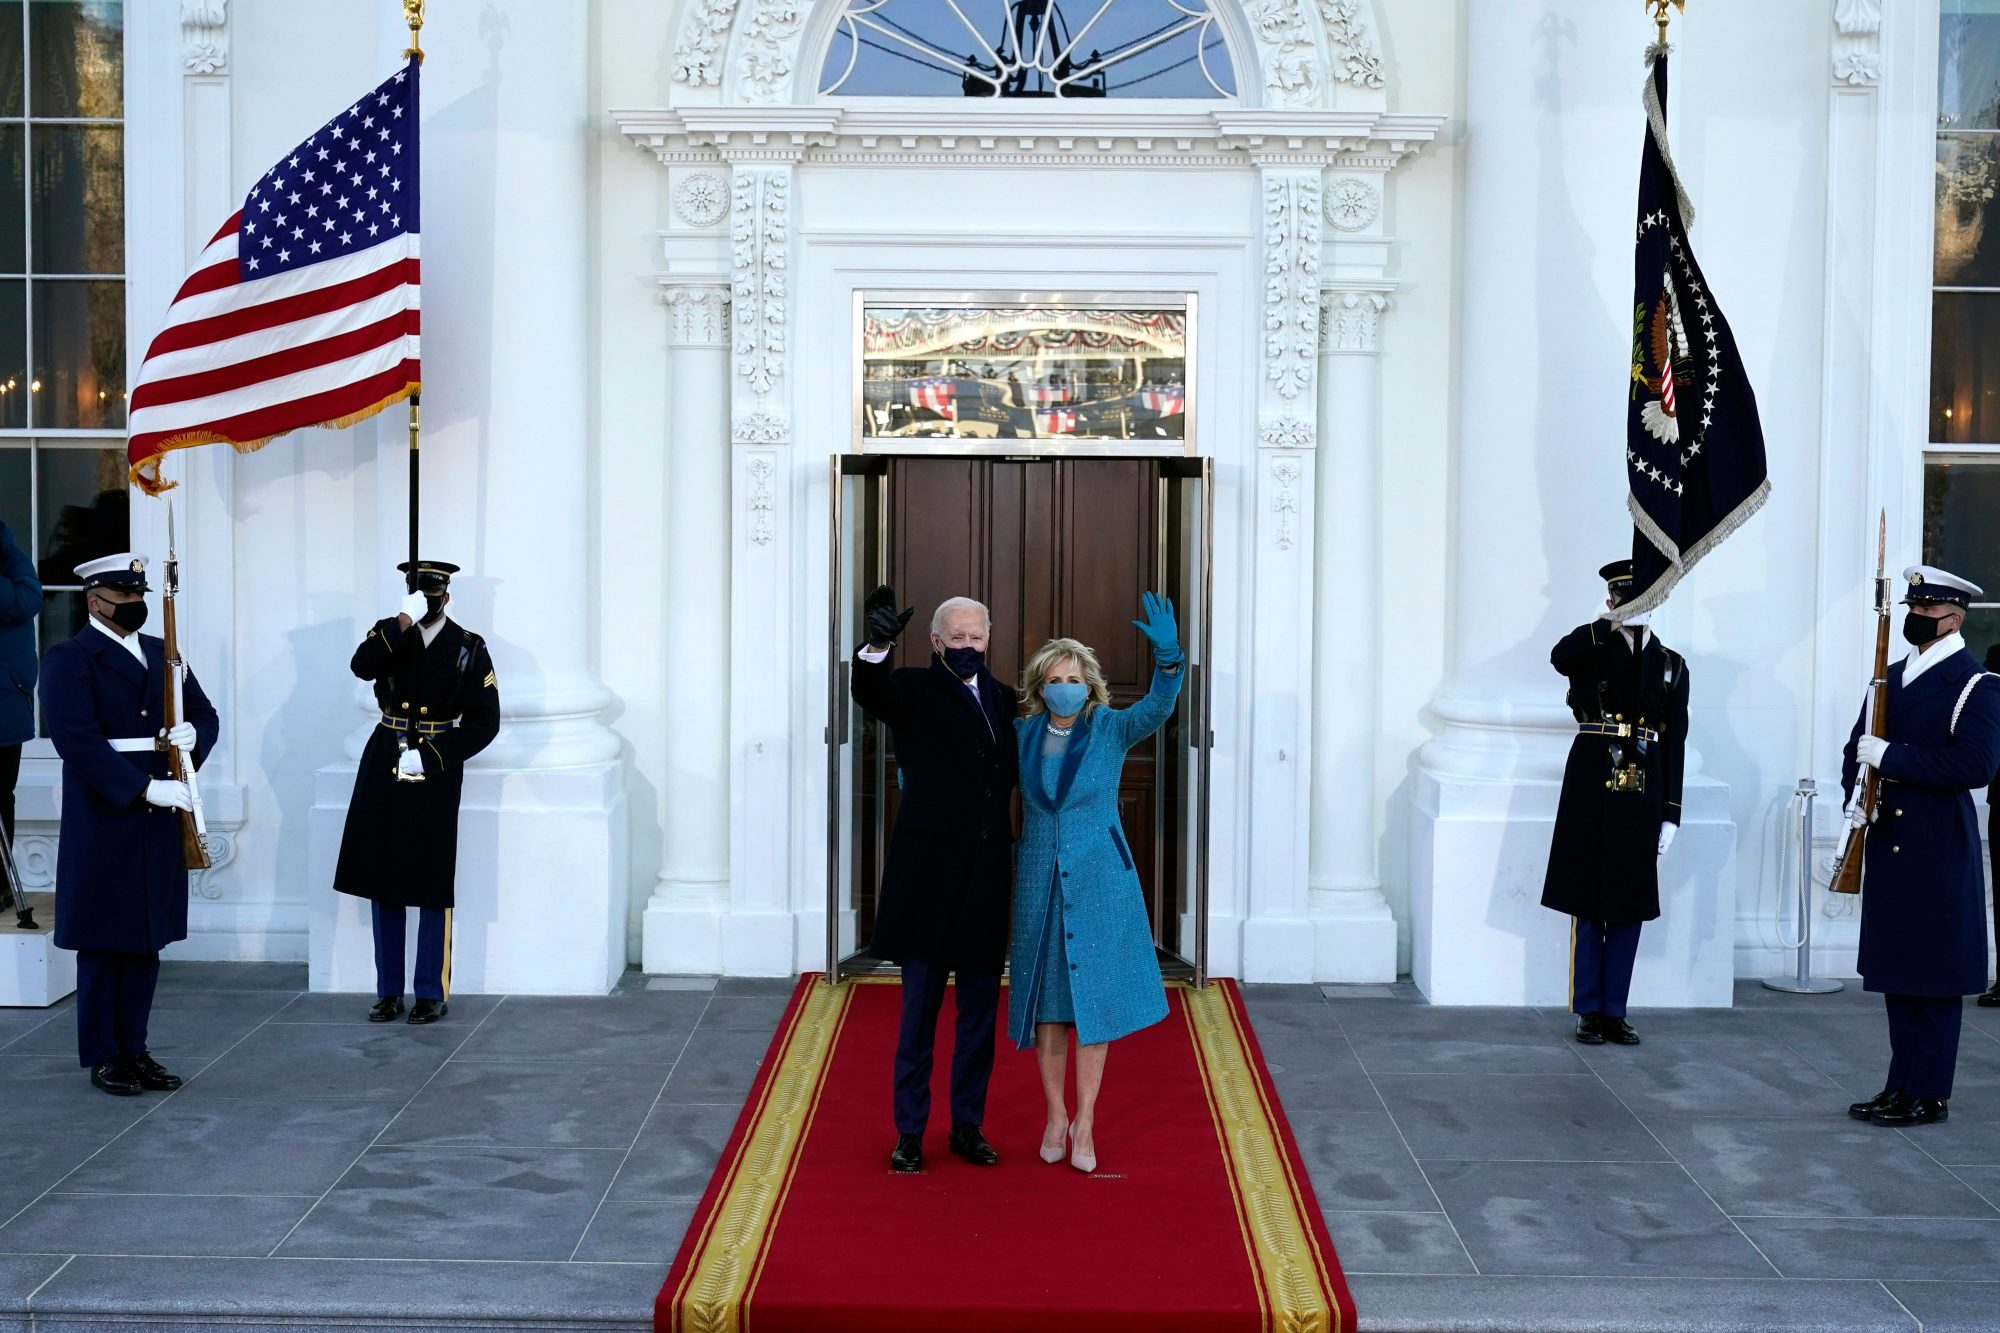 An images of President Joe Biden and First Lady Jill Biden at the 2021 inauguration.